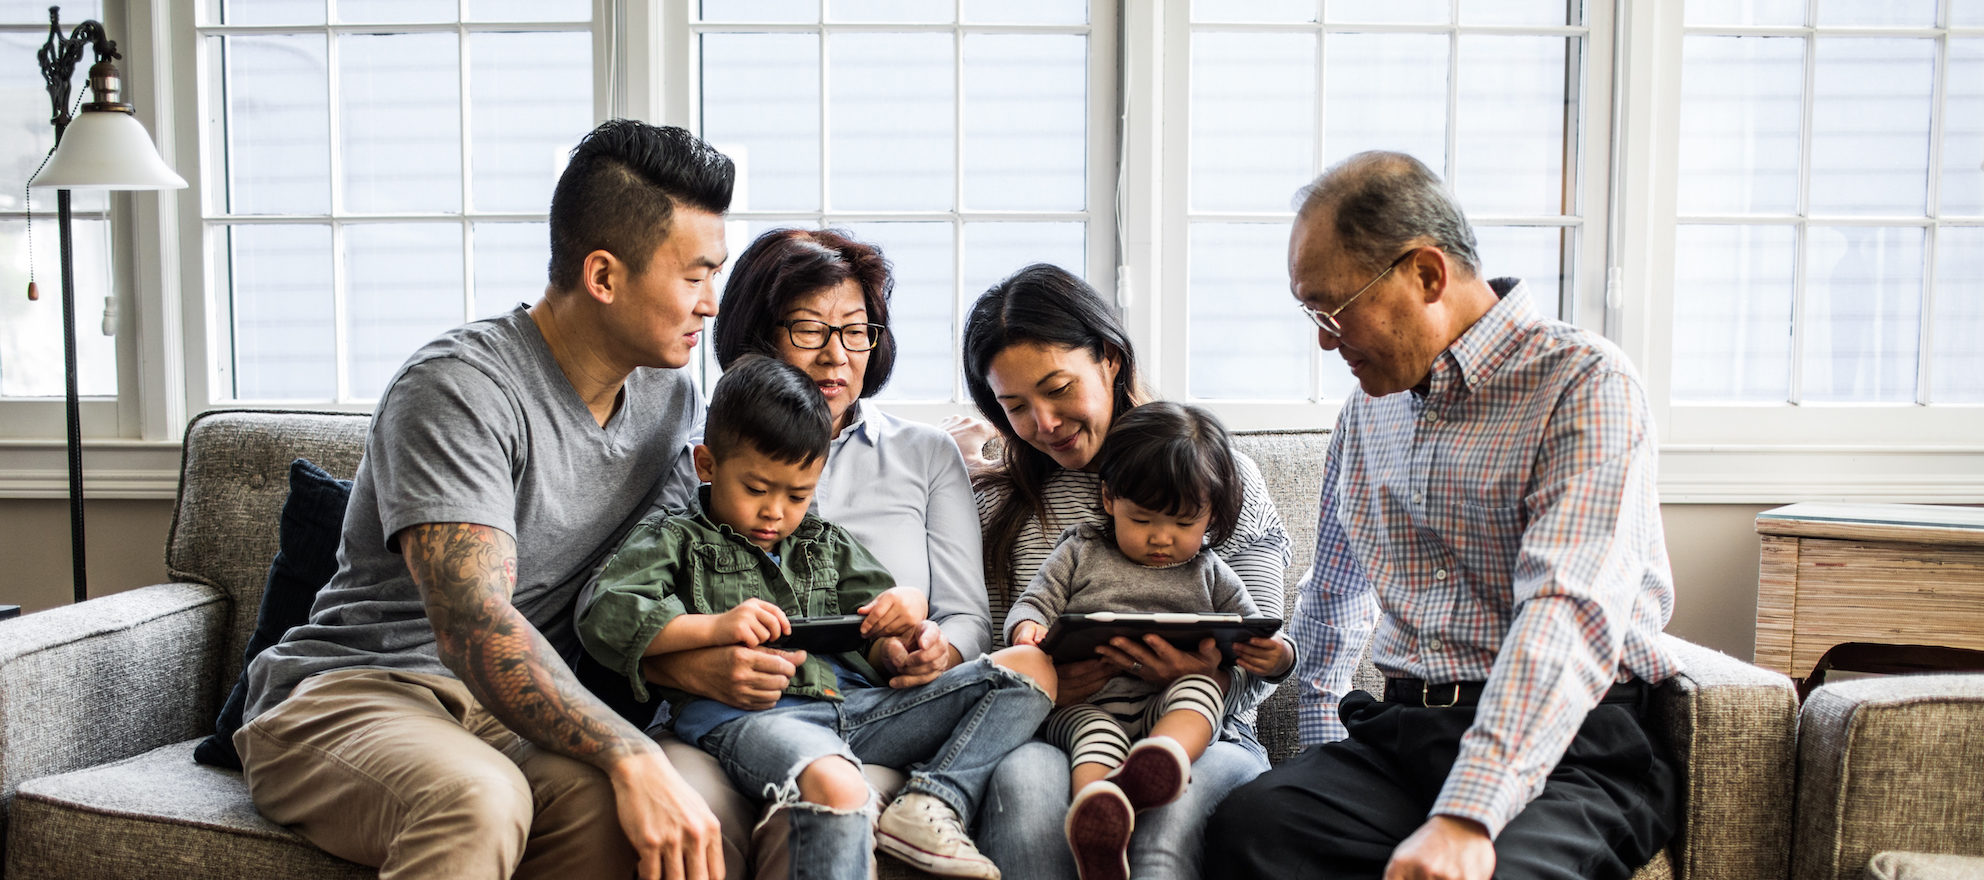 Multigenerational households are on the rise, according to new data